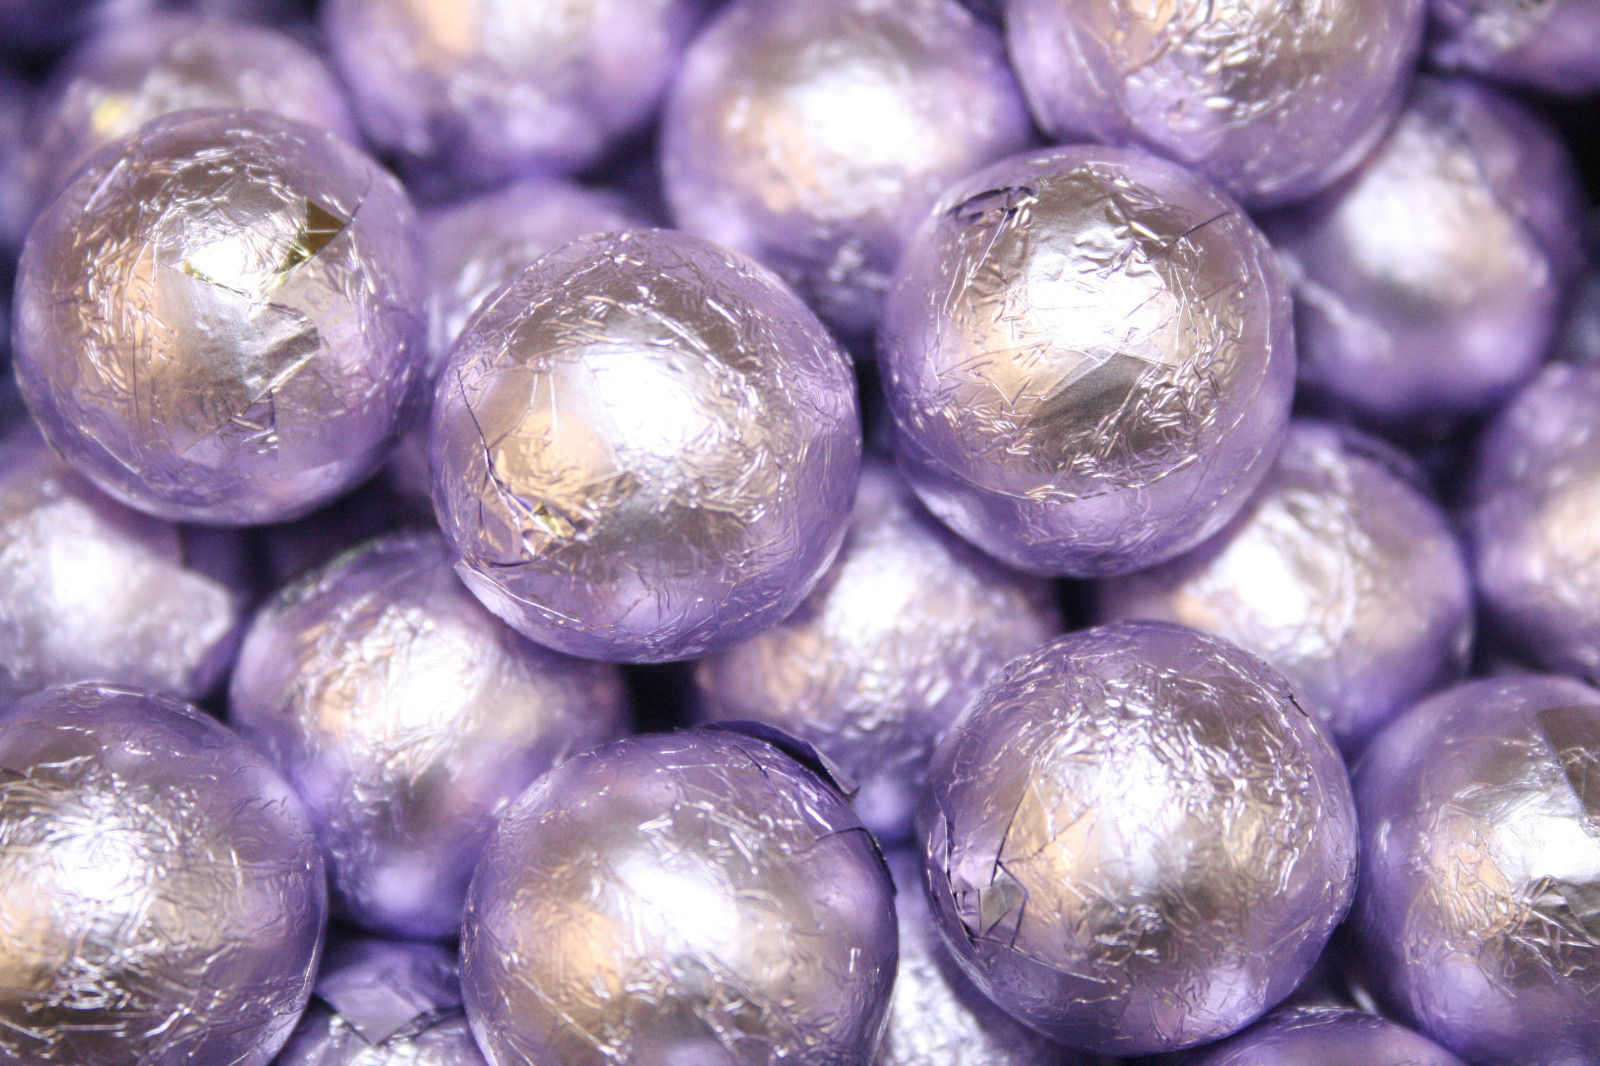 MILK CHOCOLATE BALLS LAVENDER FOILED, 2LBS